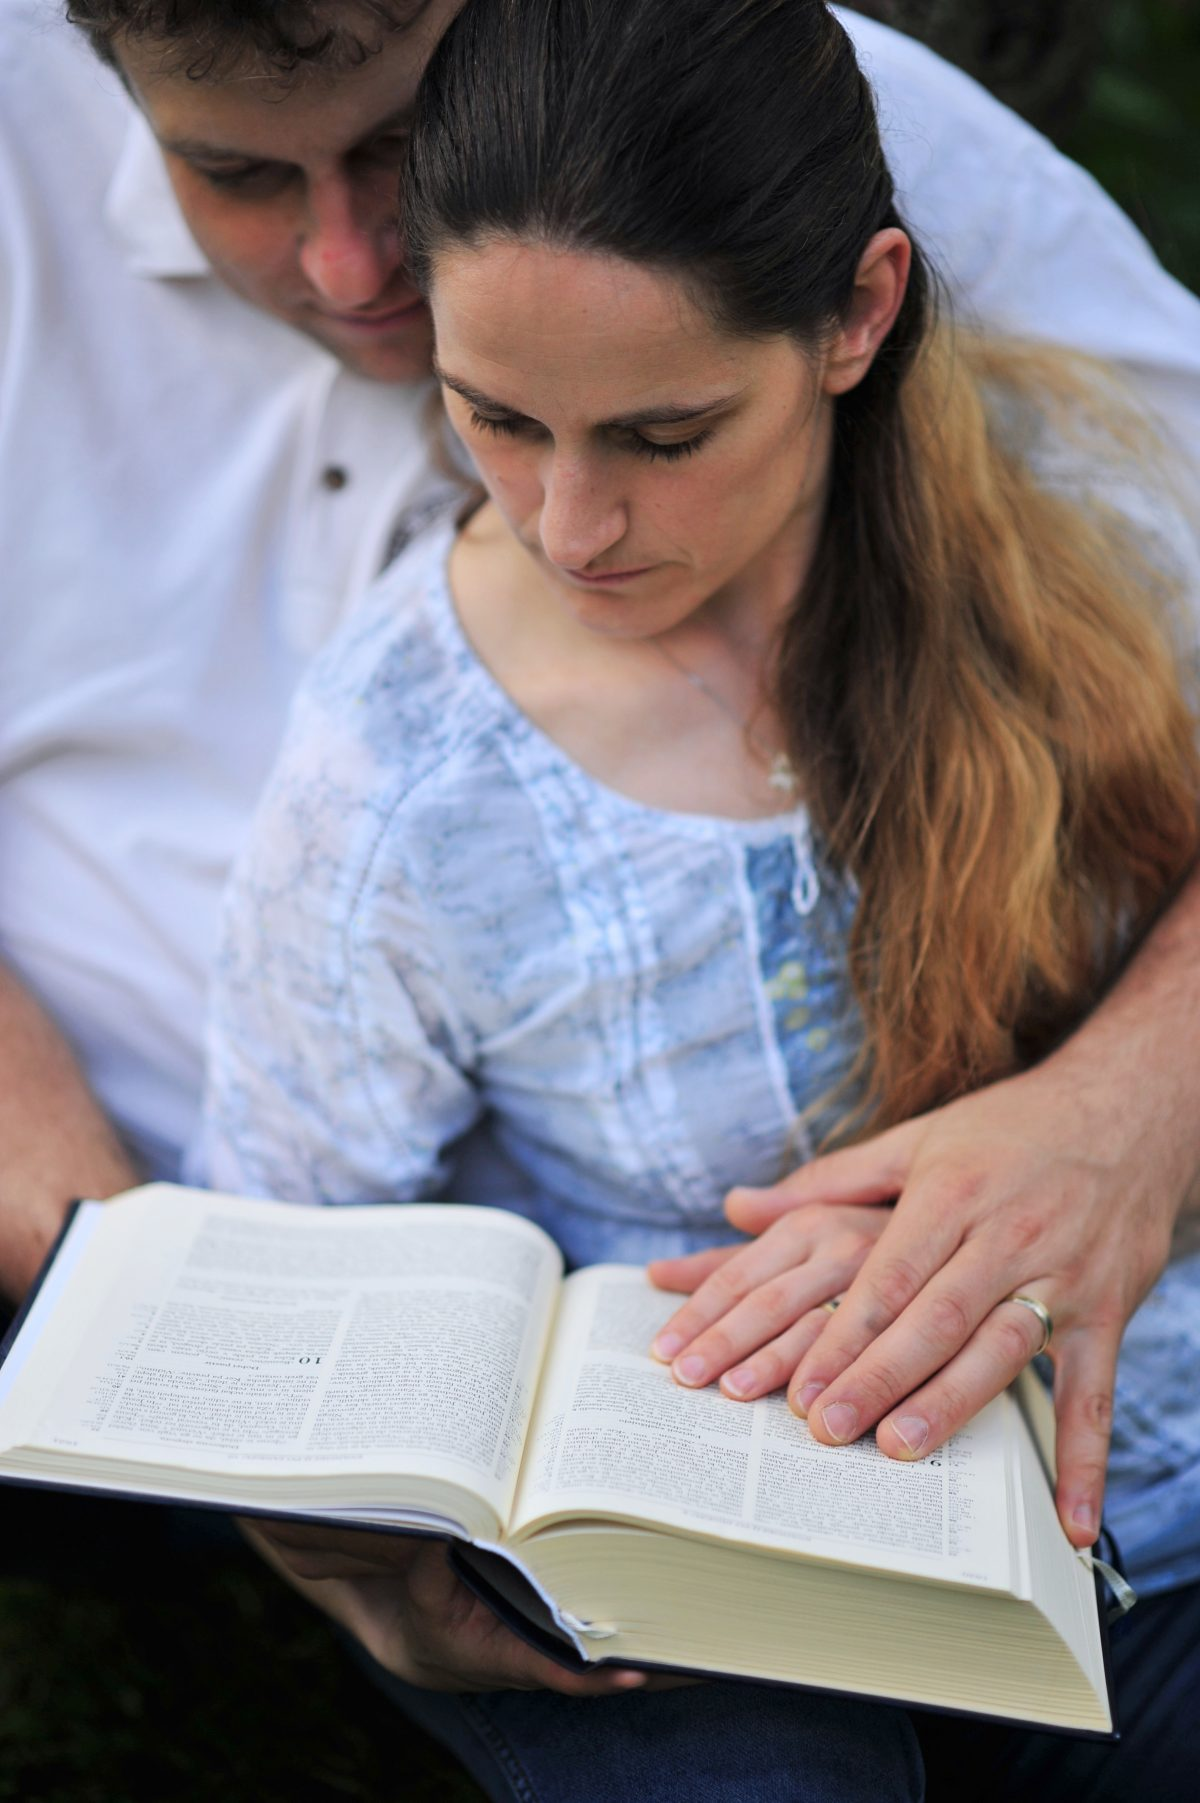 COUPLE READING BIBLE